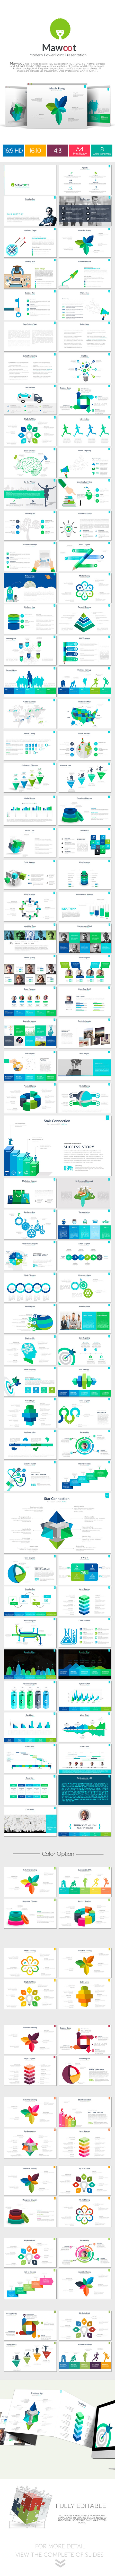 GraphicRiver Mawoot Modern Powerpoint 10733977